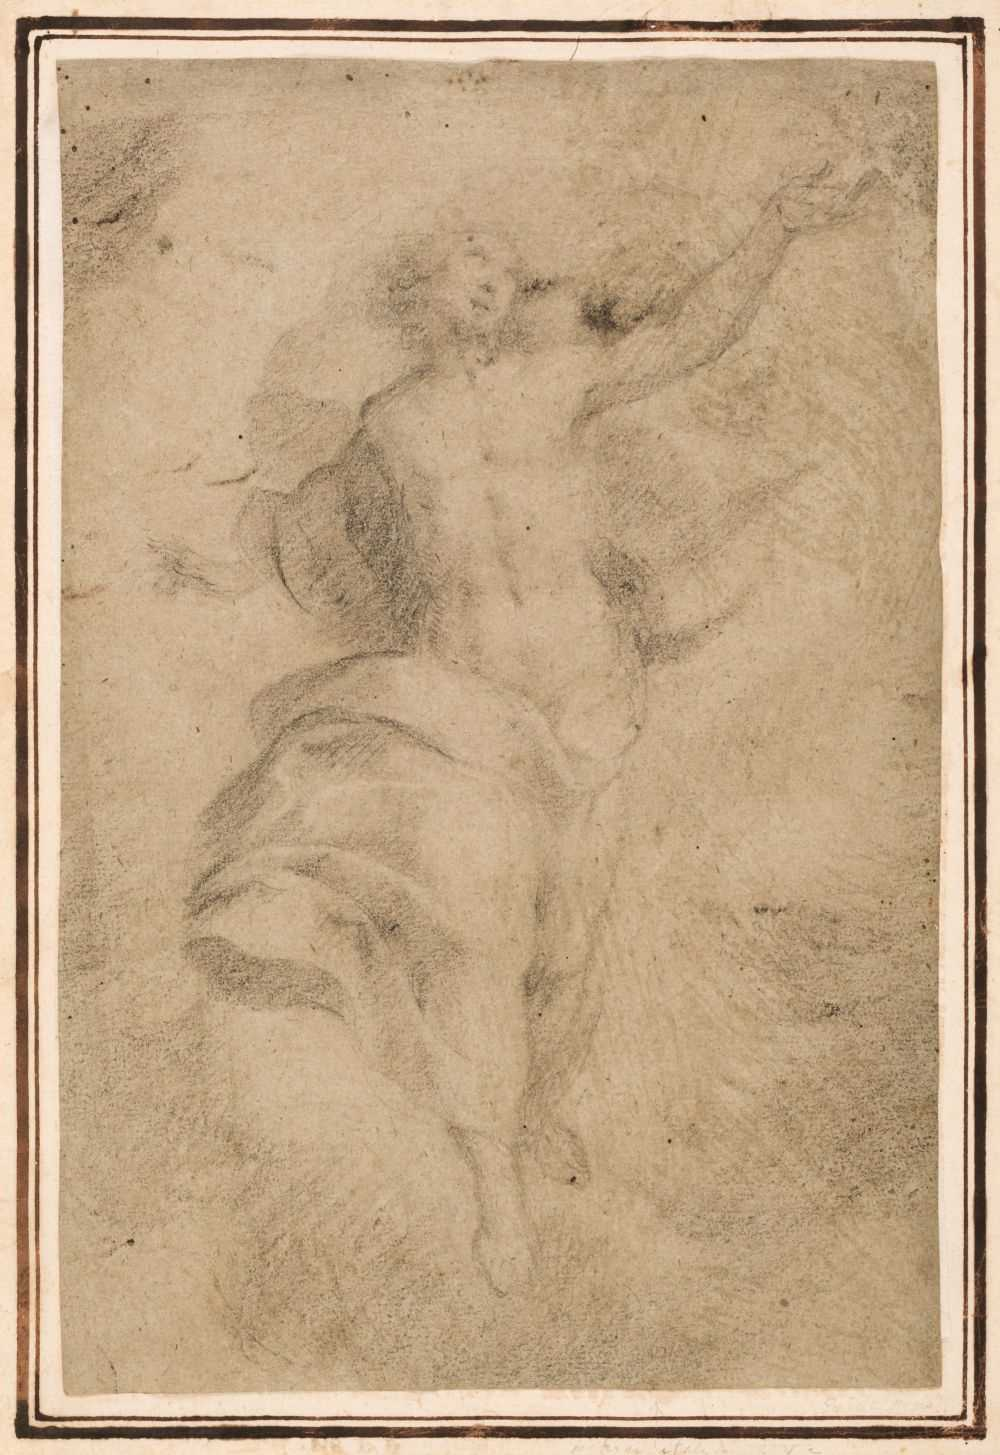 Lot 12 - Lanfanco, Giovanni (1582-1647), Attributed to. A Study for the Transfiguration, black chalk